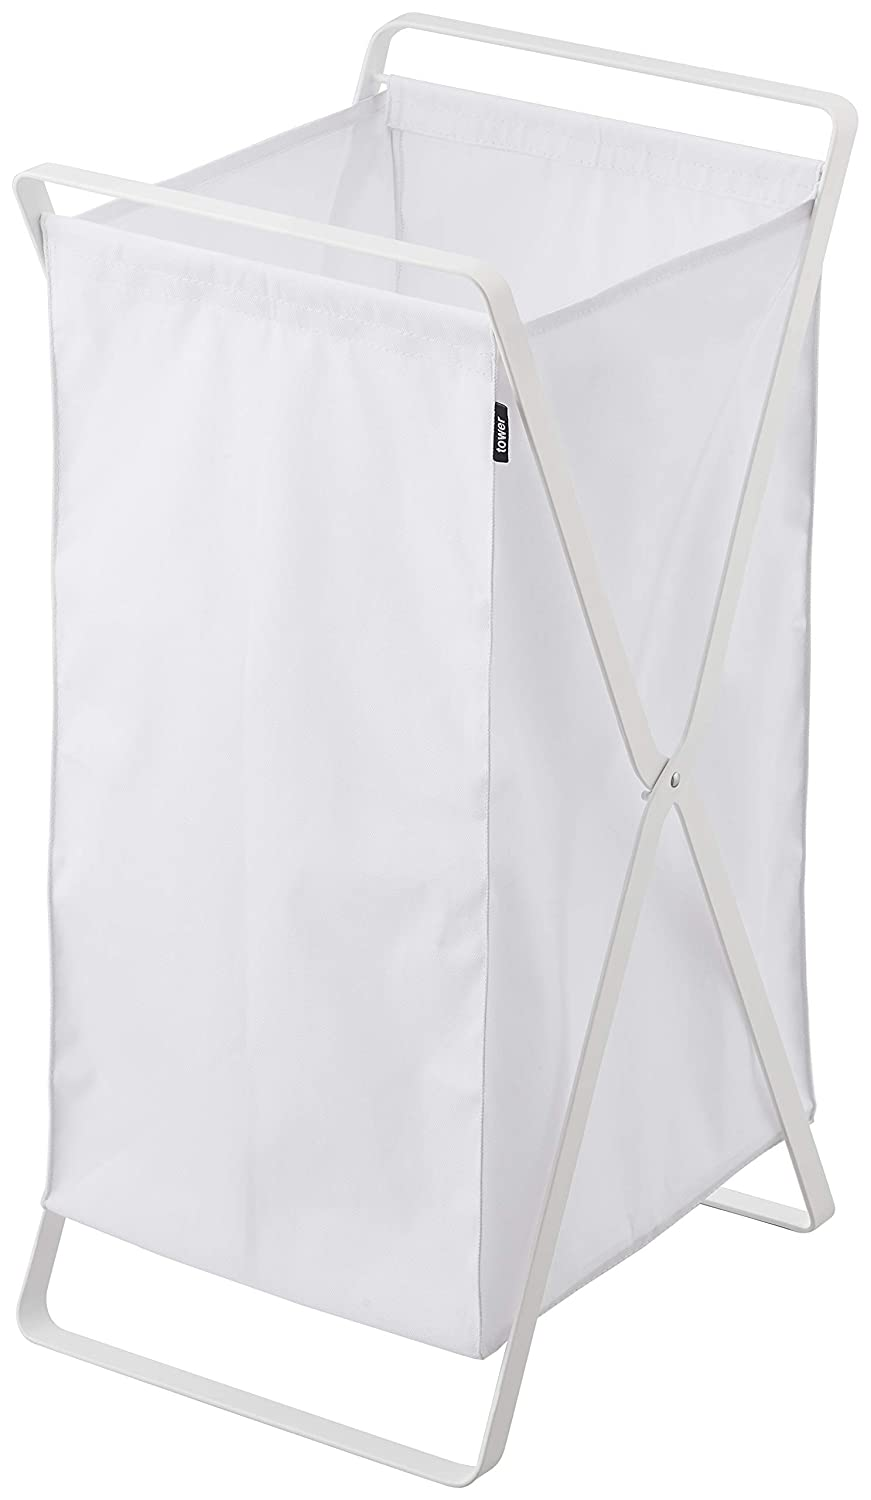 YAMAZAKI home 2484 Tower Laundry Basket-Foldable Storage Hamper Organizer, White